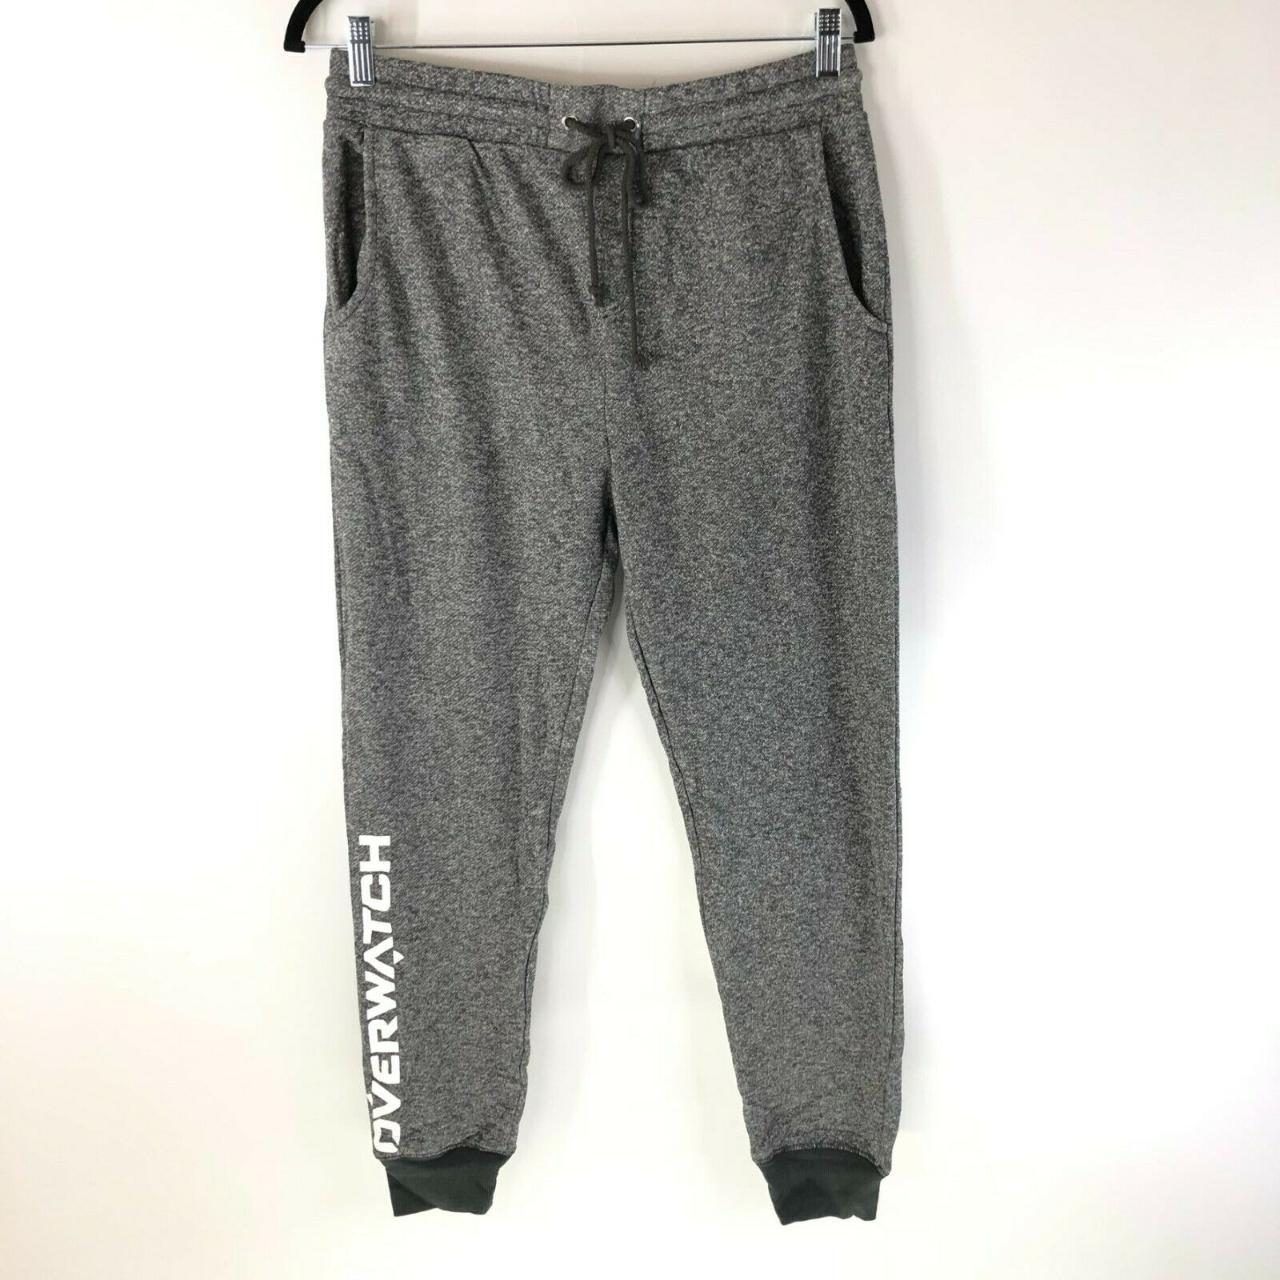 Product Image 1 - Overwatch Womens Jogger Pants Pull